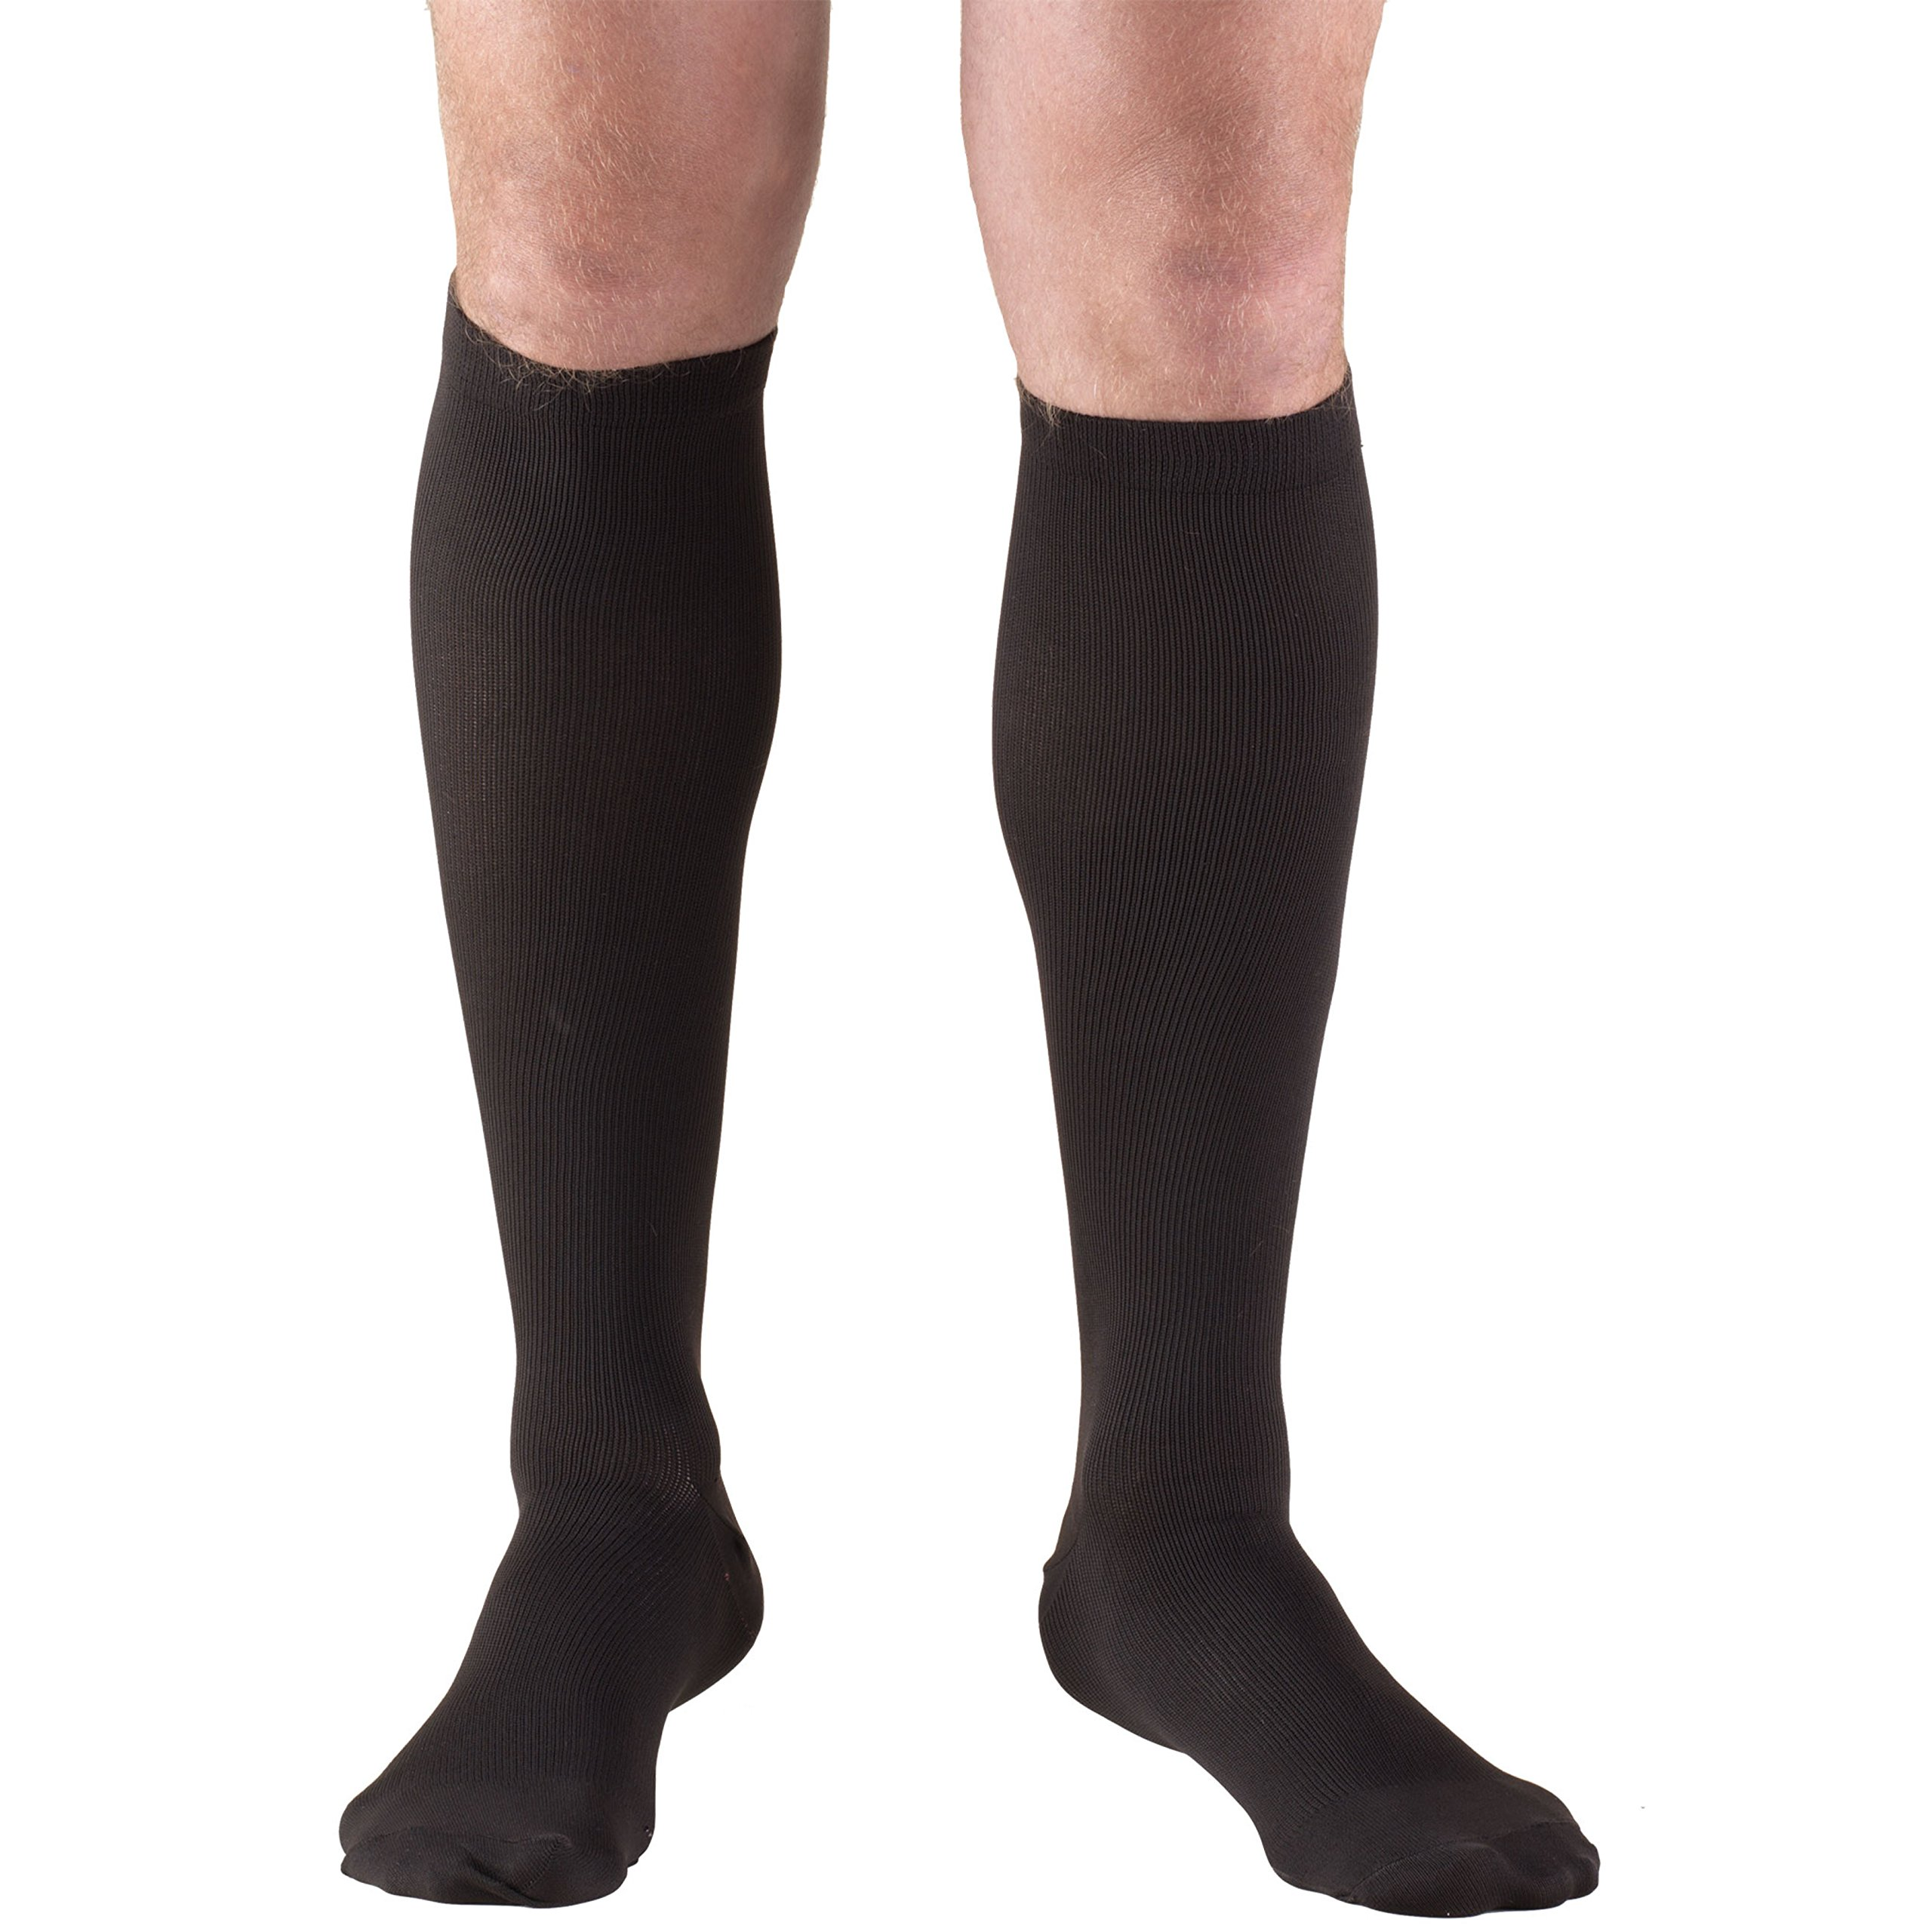 Truform Men's Knee High 30-40 mmHg Compression Dress Socks, Black, Small by Truform (Image #1)